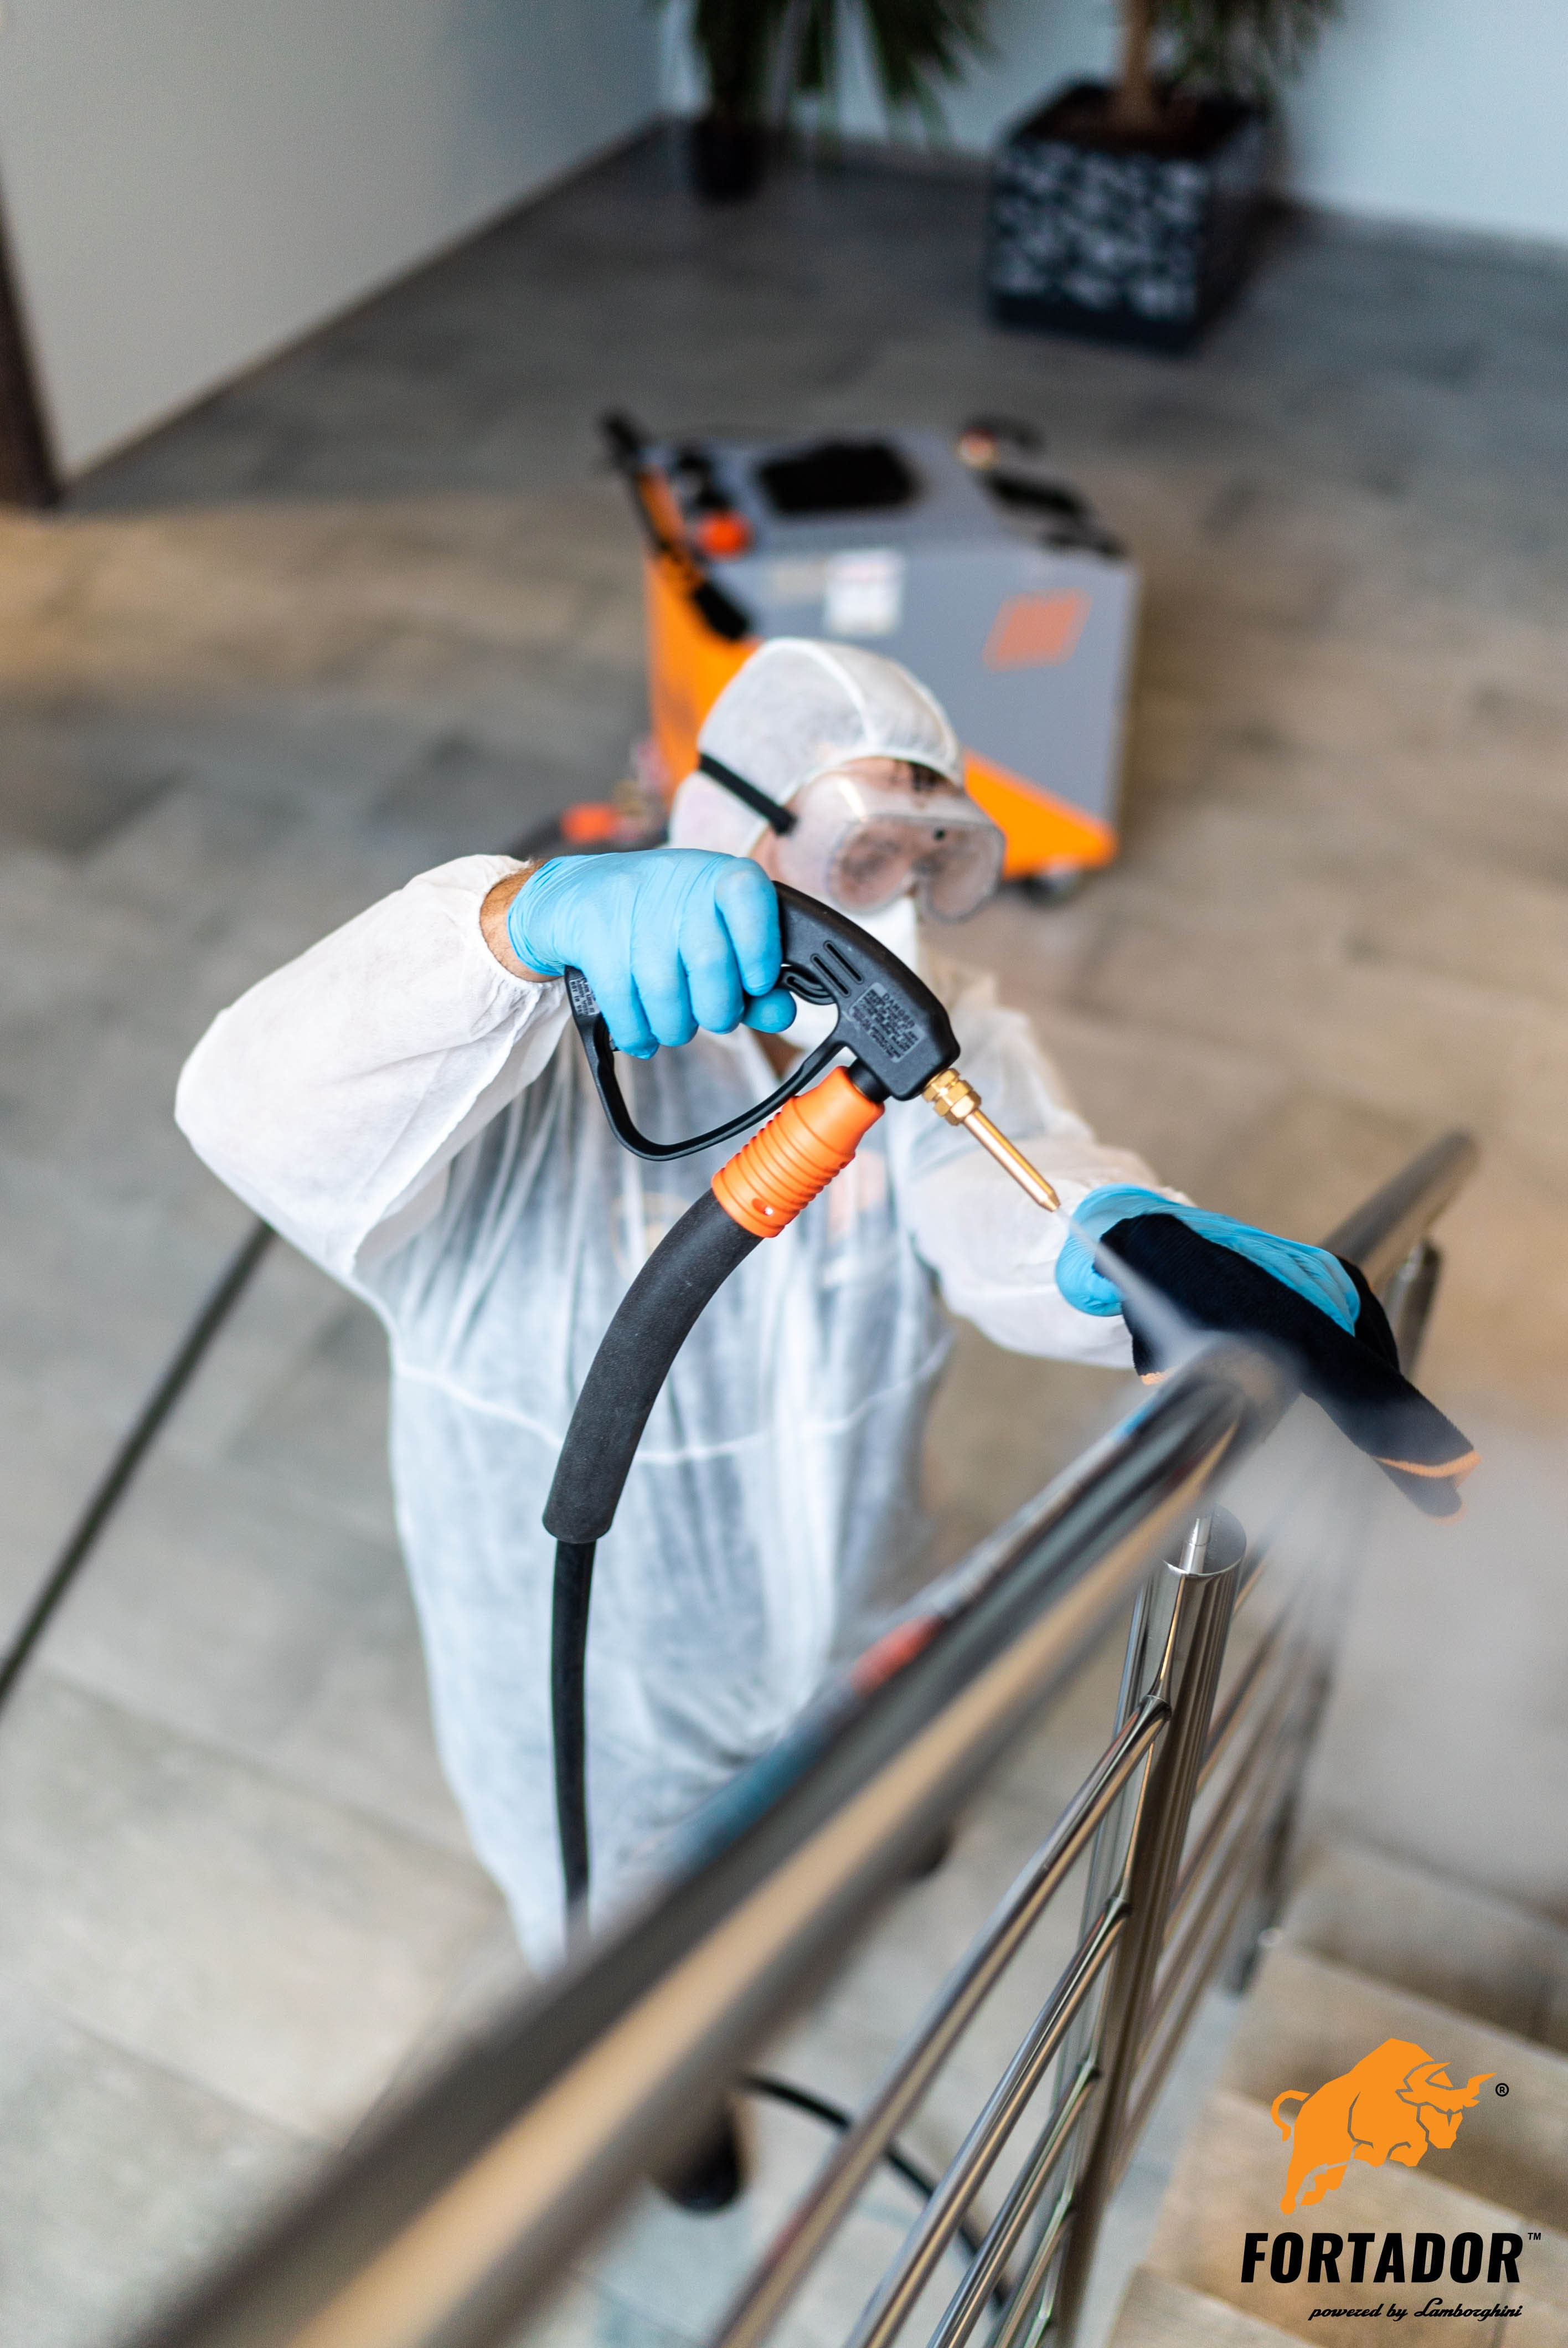 steam cleaner for disinfection